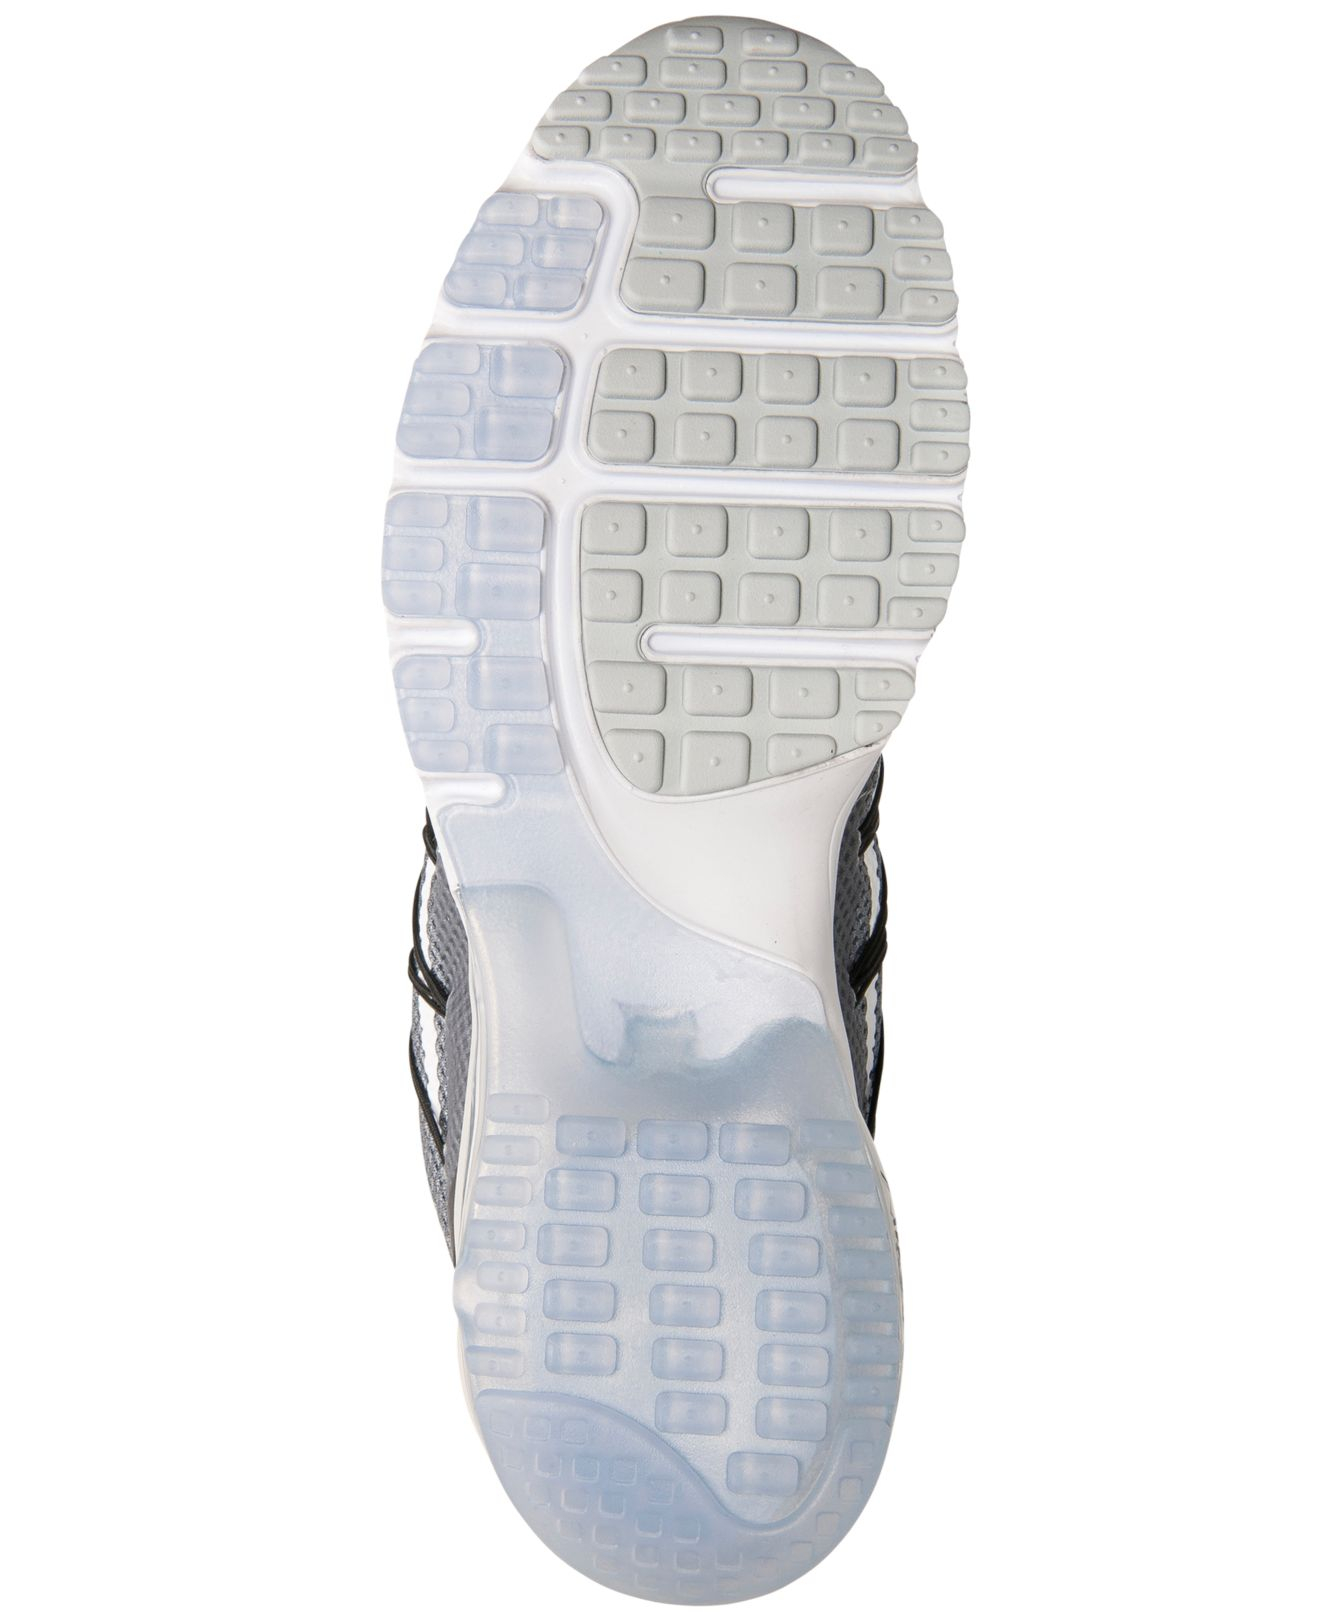 brand new b7fce 3977d nike-cool-greywhiteblackpur-mens-air -max-excellerate-3-running-sneakers-from-finish-line-gray-product-4-487139751-normal.jpeg